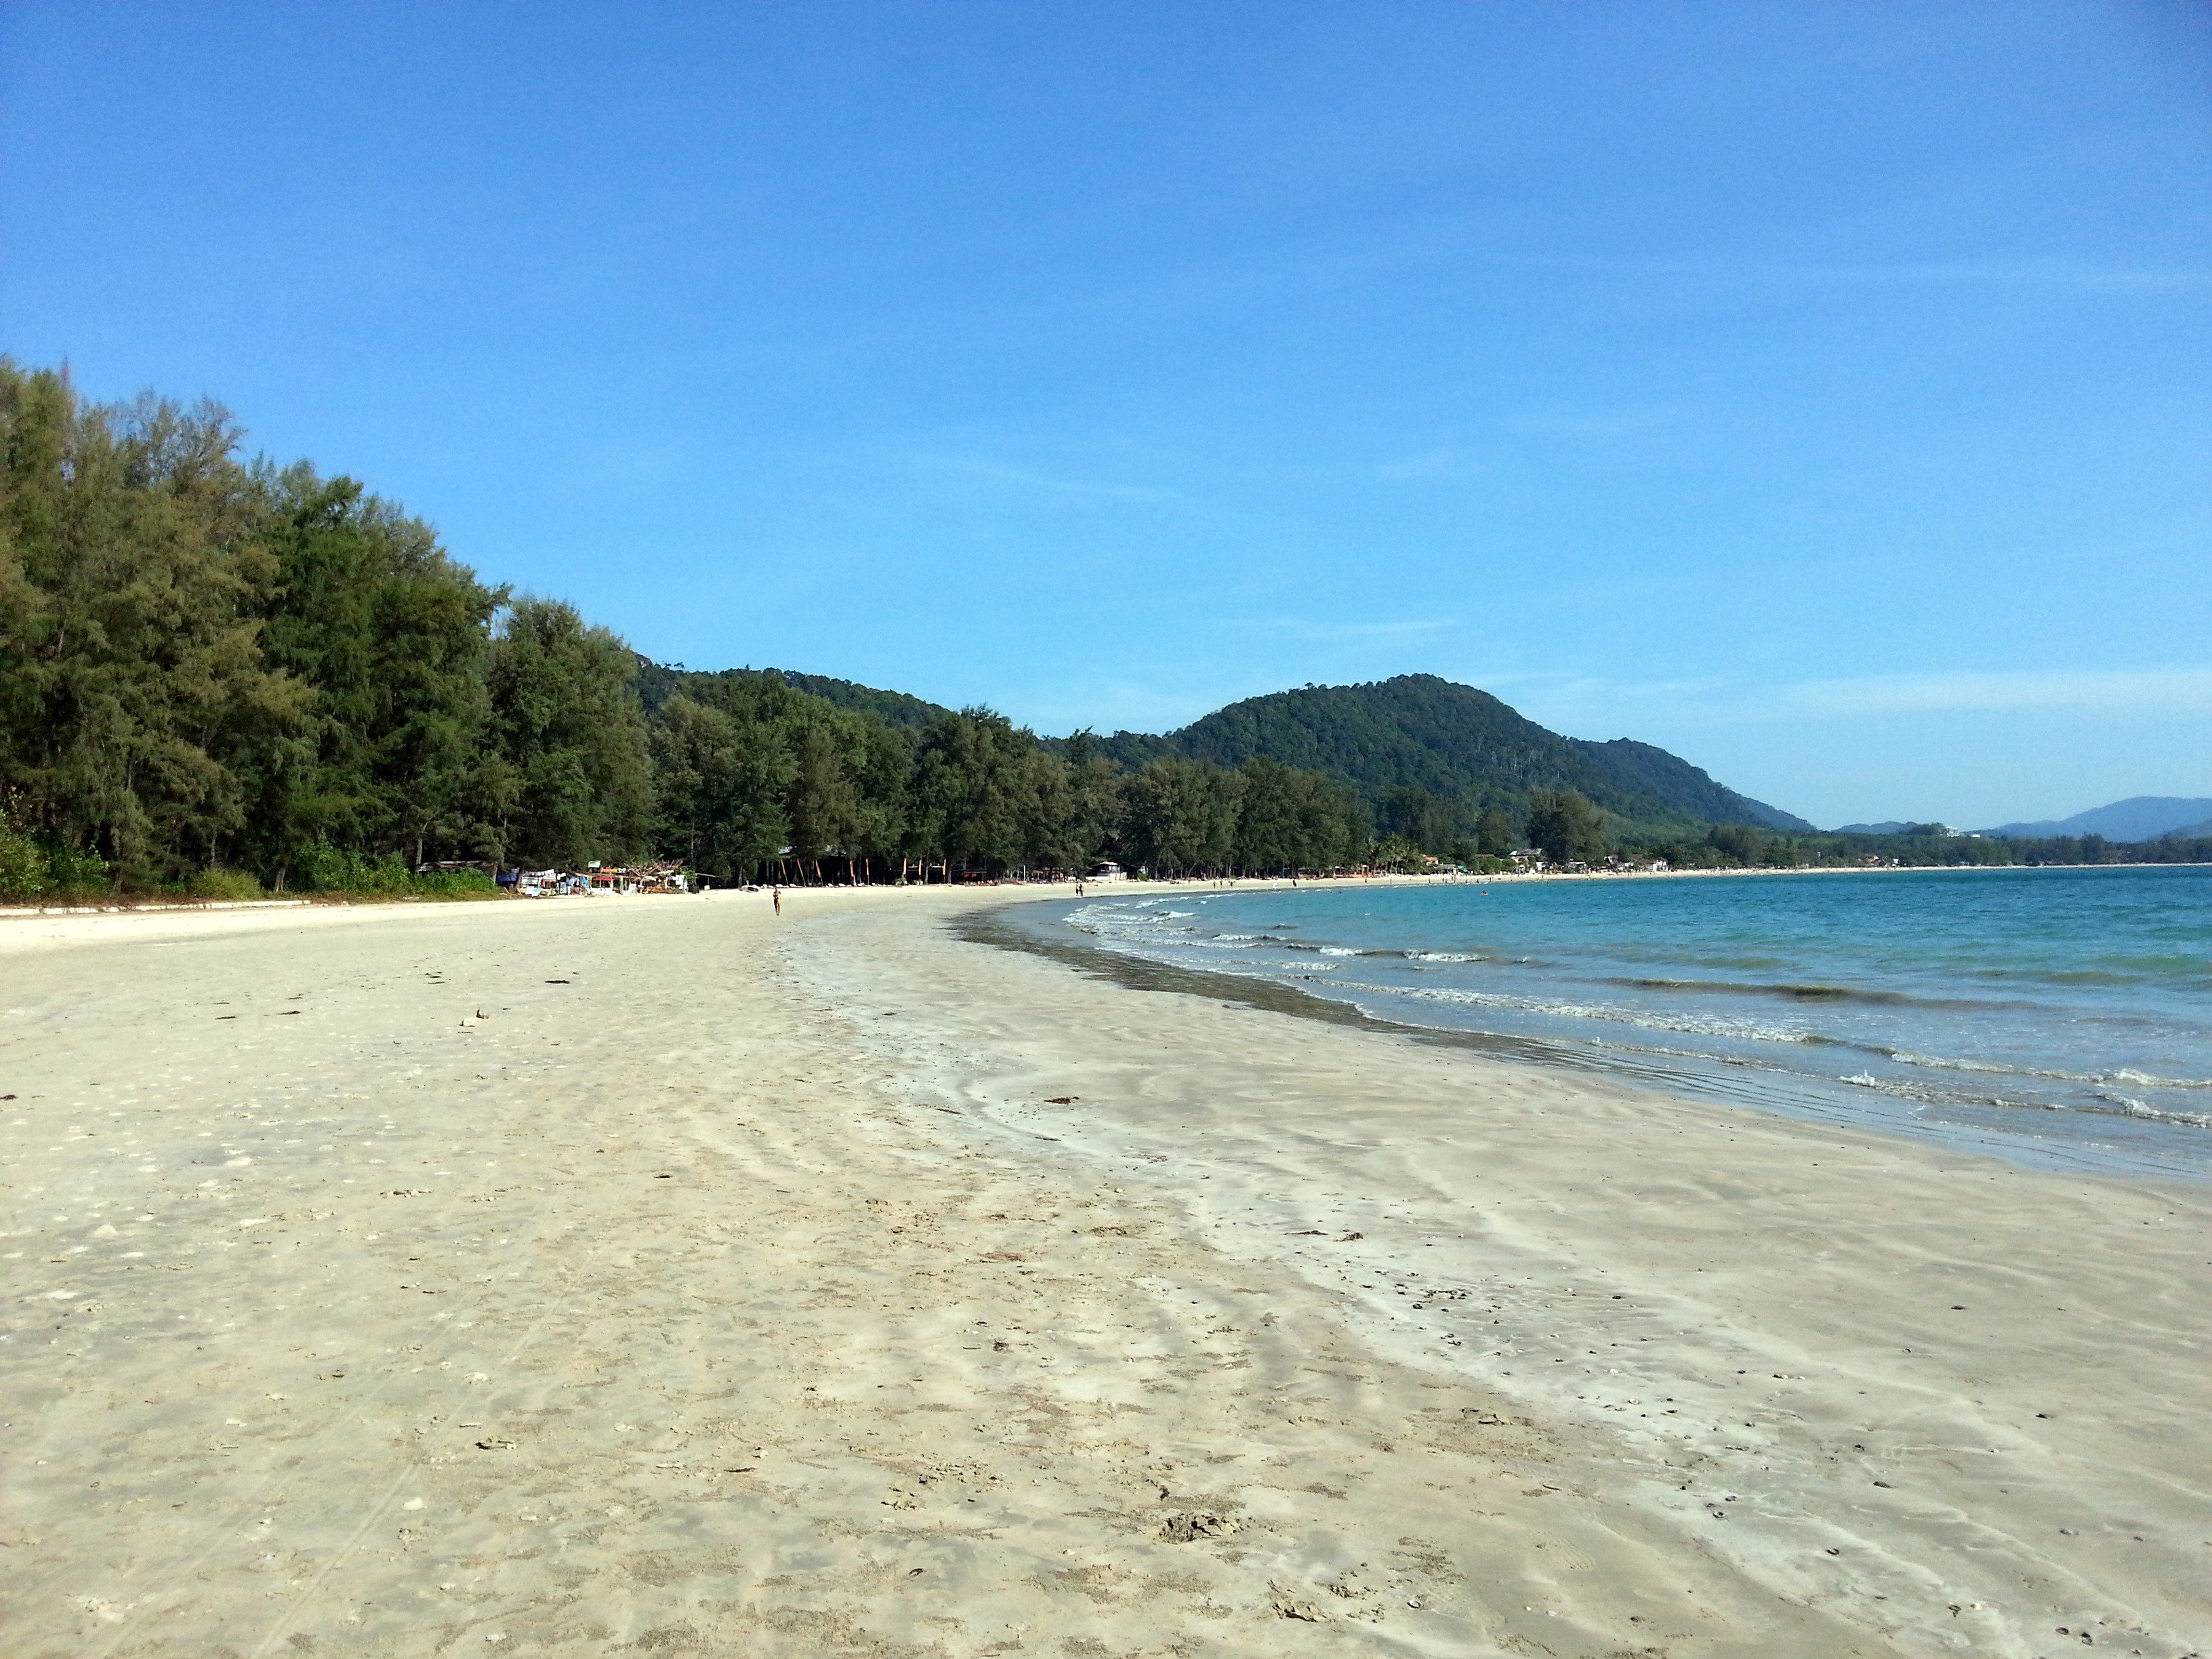 Klong Dao Beach in Koh Lanta